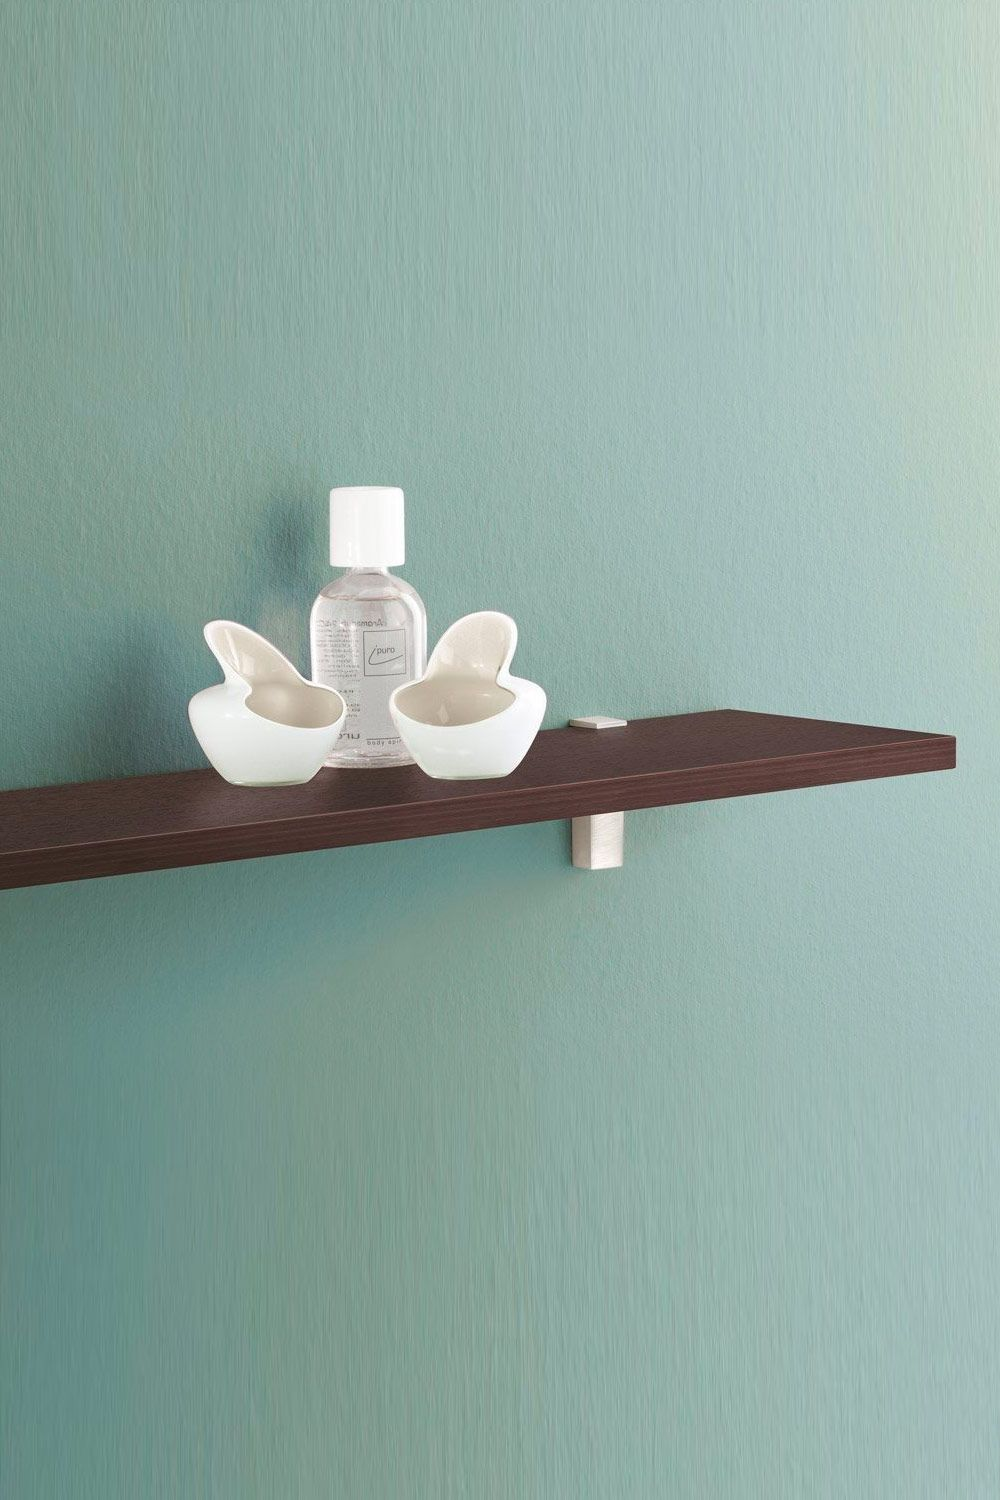 Cosmetics, perfume and towels find plenty of space on wall shelves ...